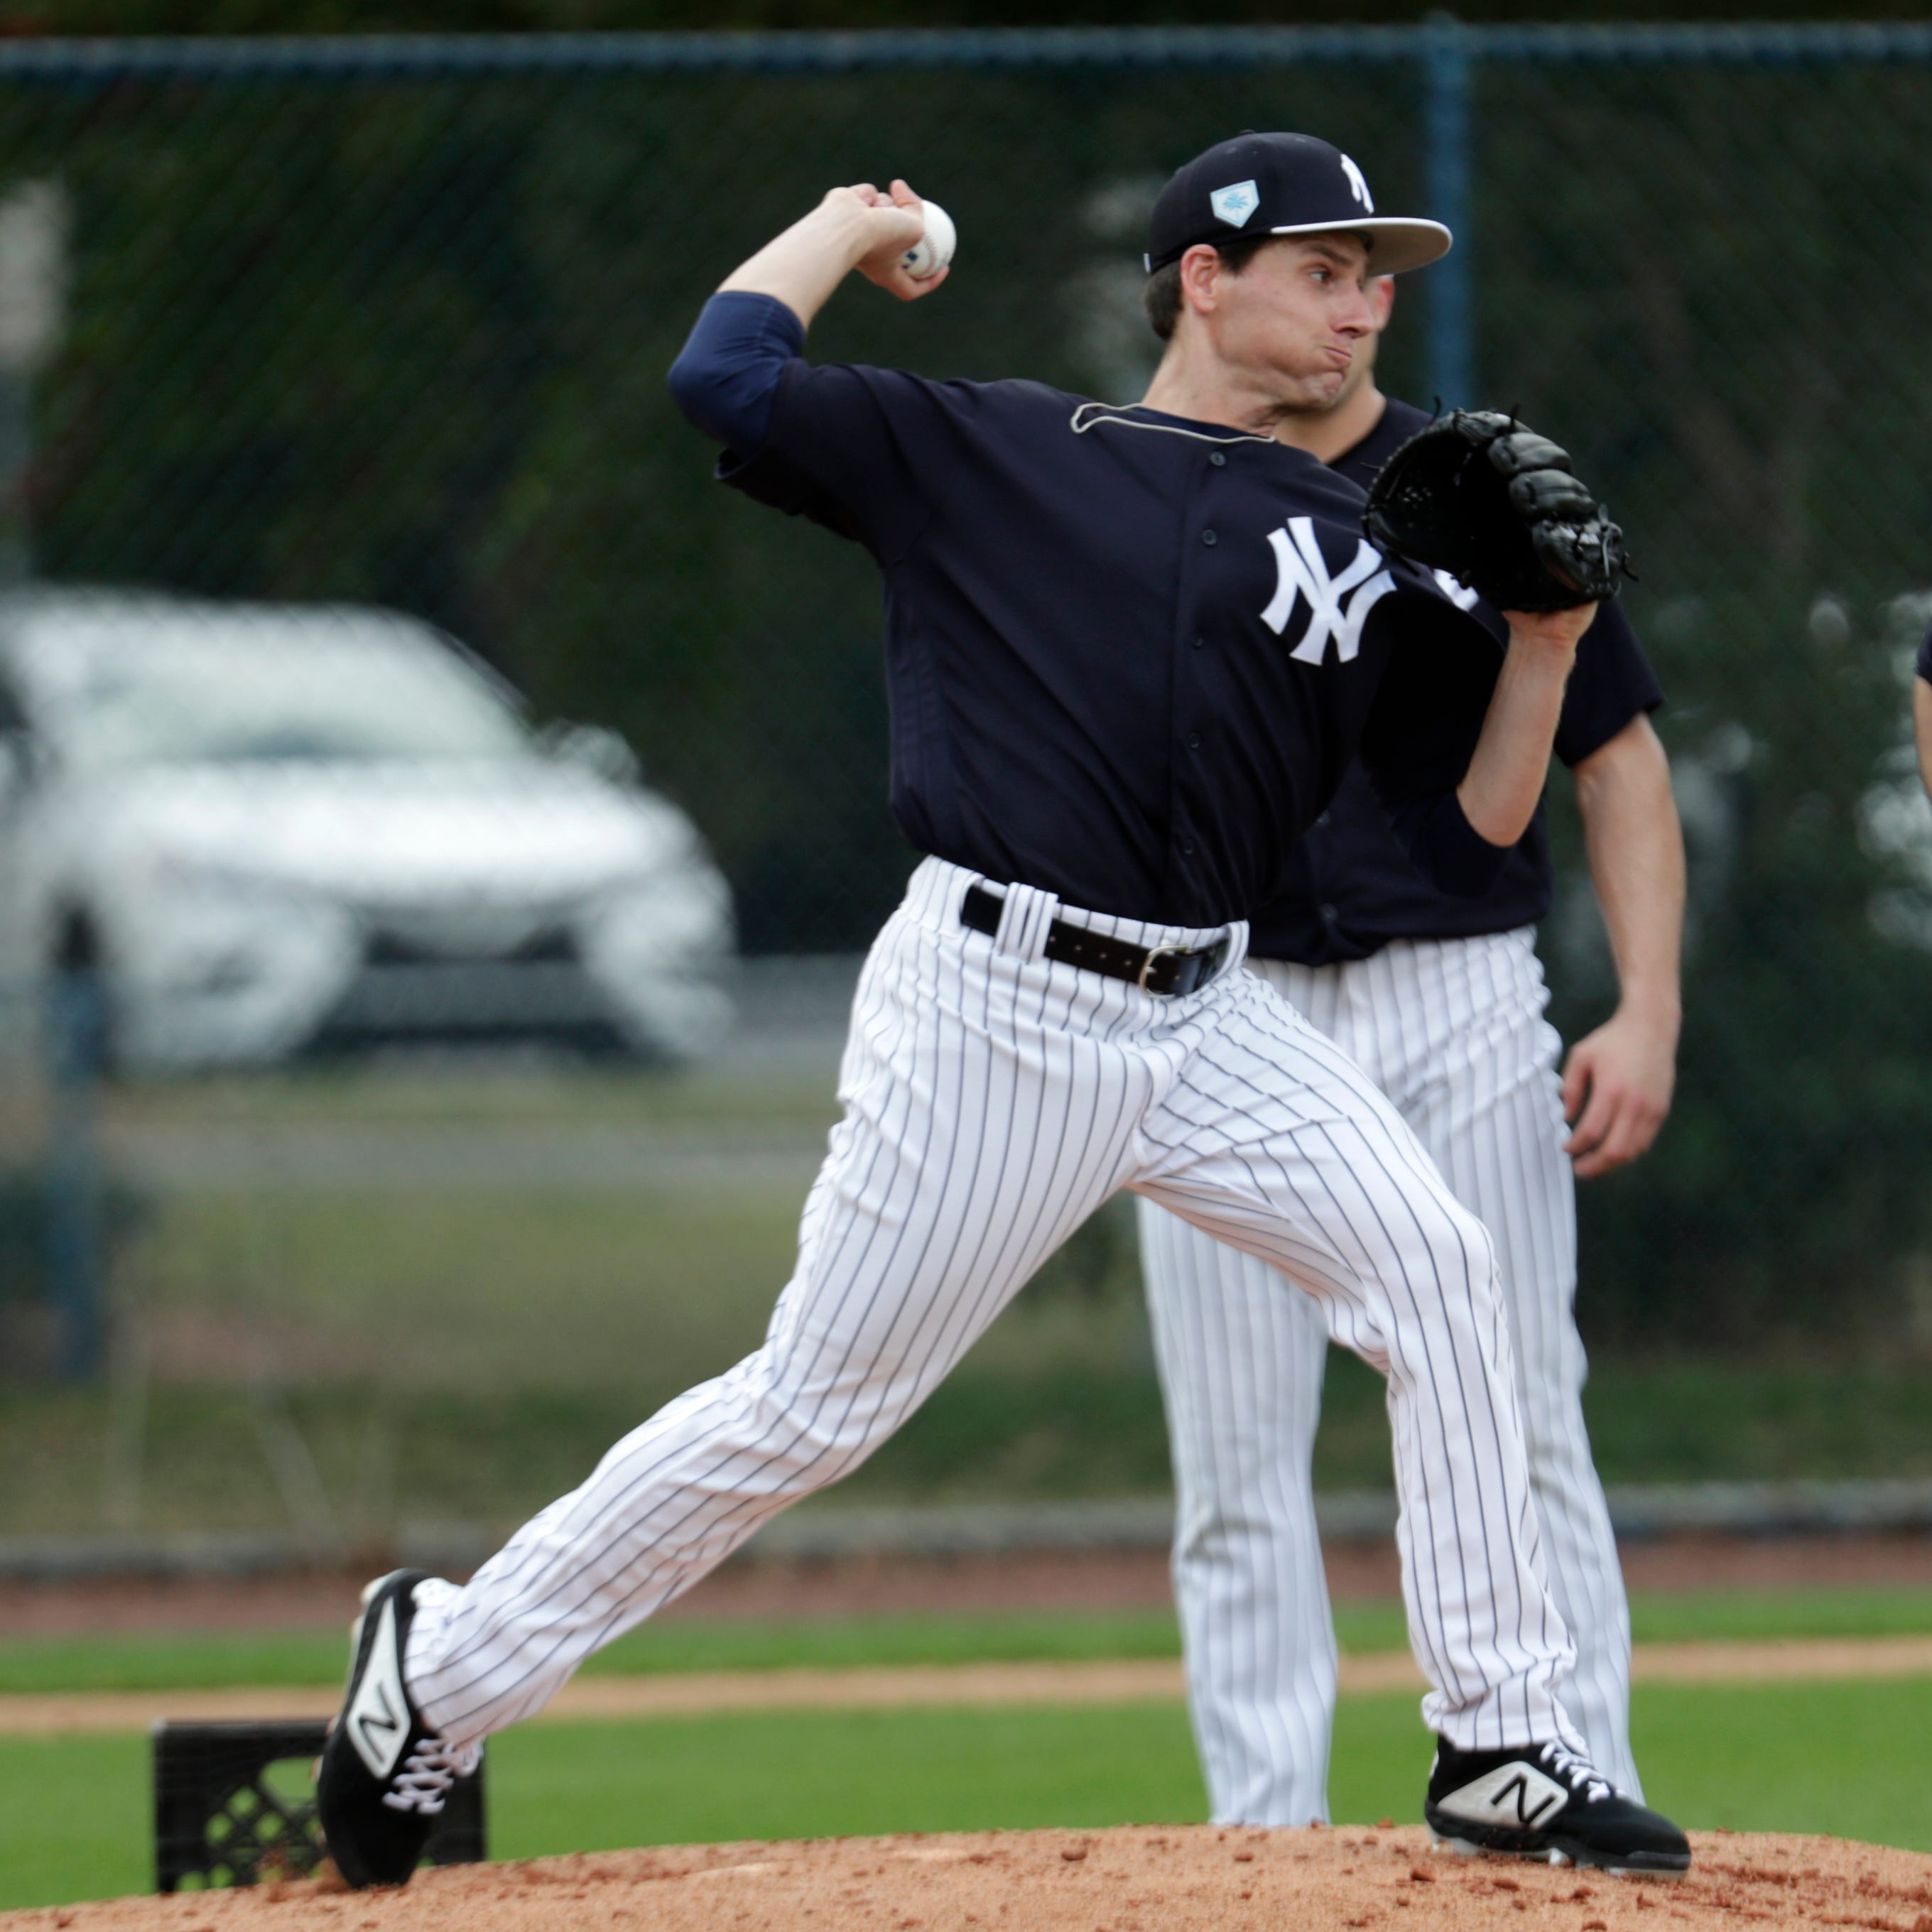 New York Yankees will keep Danny Farquhar at extended spring training